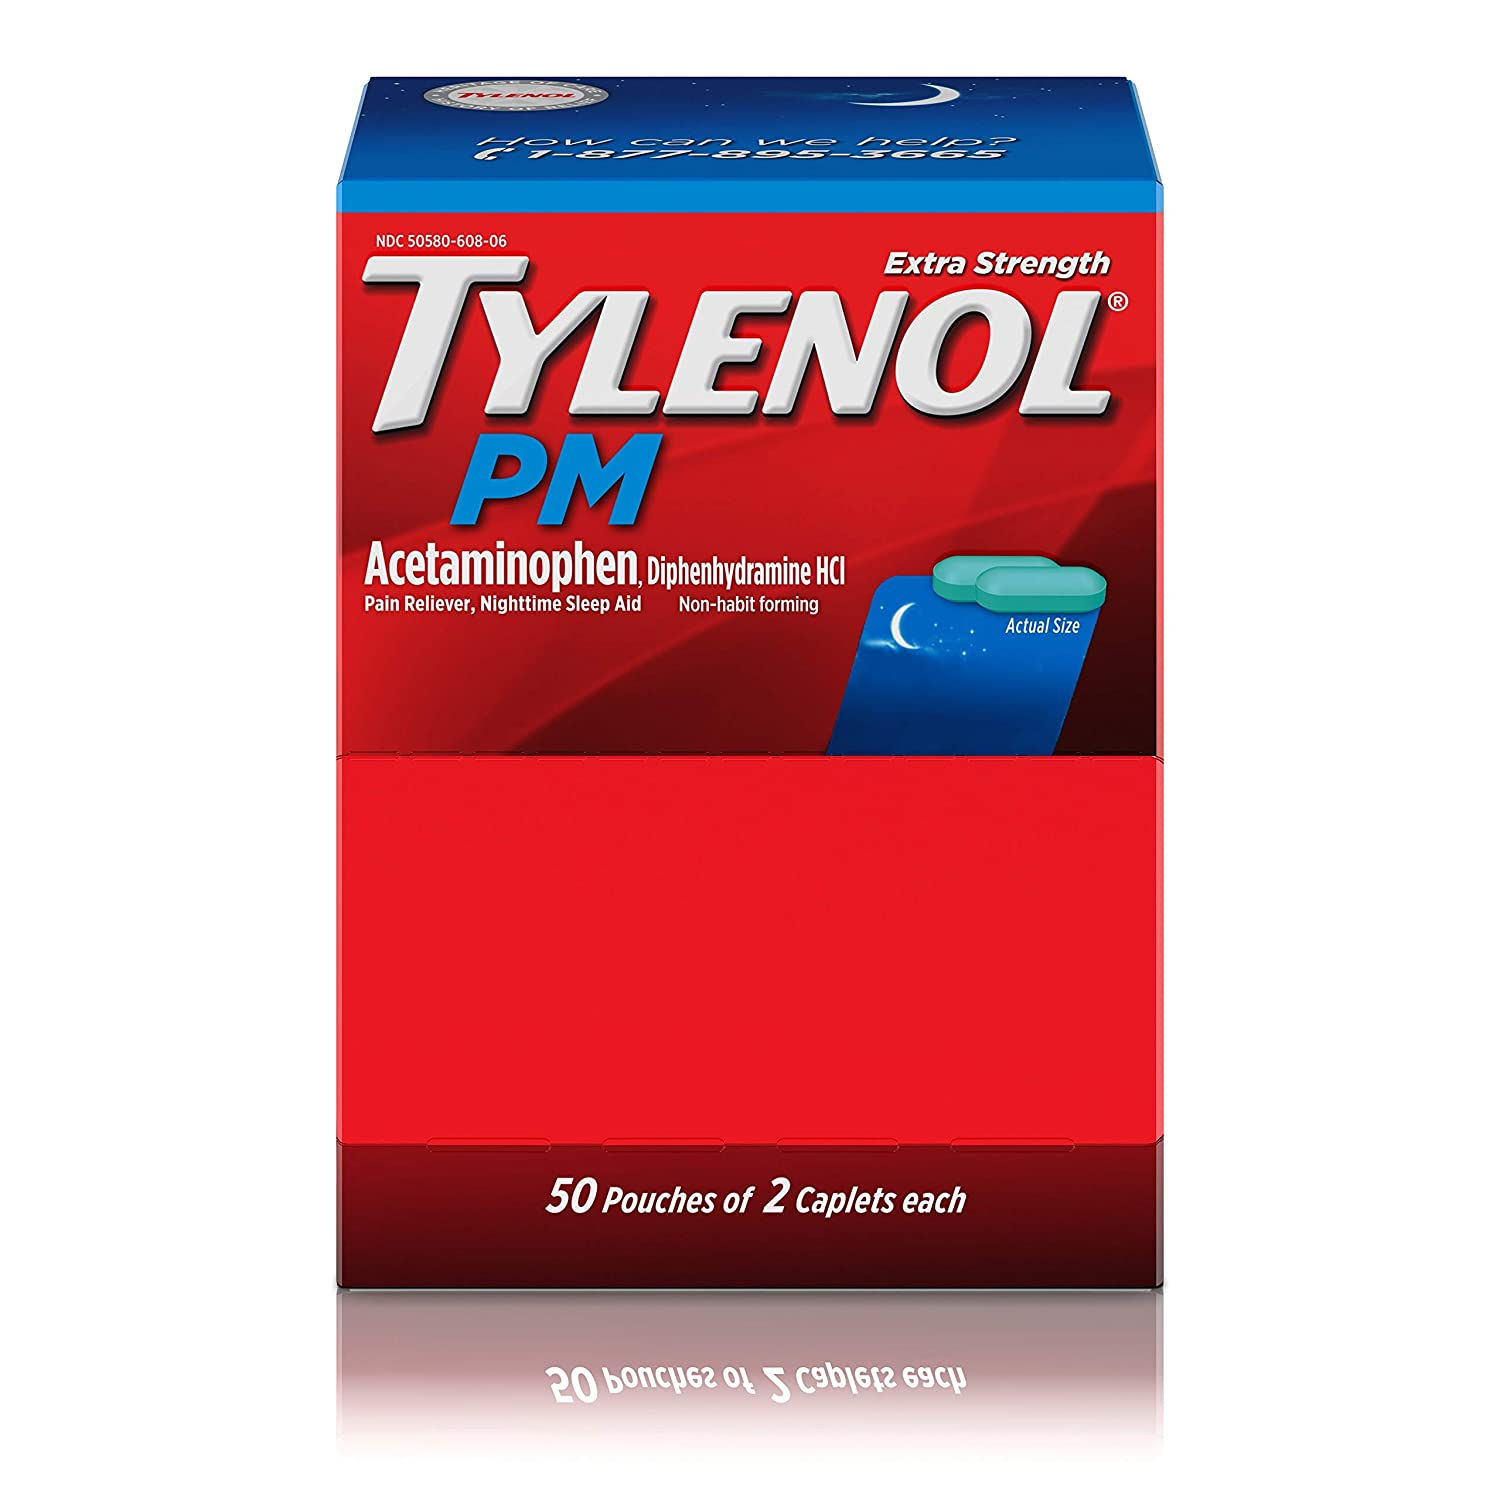 Tylenol PM Extra Strength Pain Reliever & Sleep Aid with Acetaminophen, 50 Travel Packs of 2 ct.